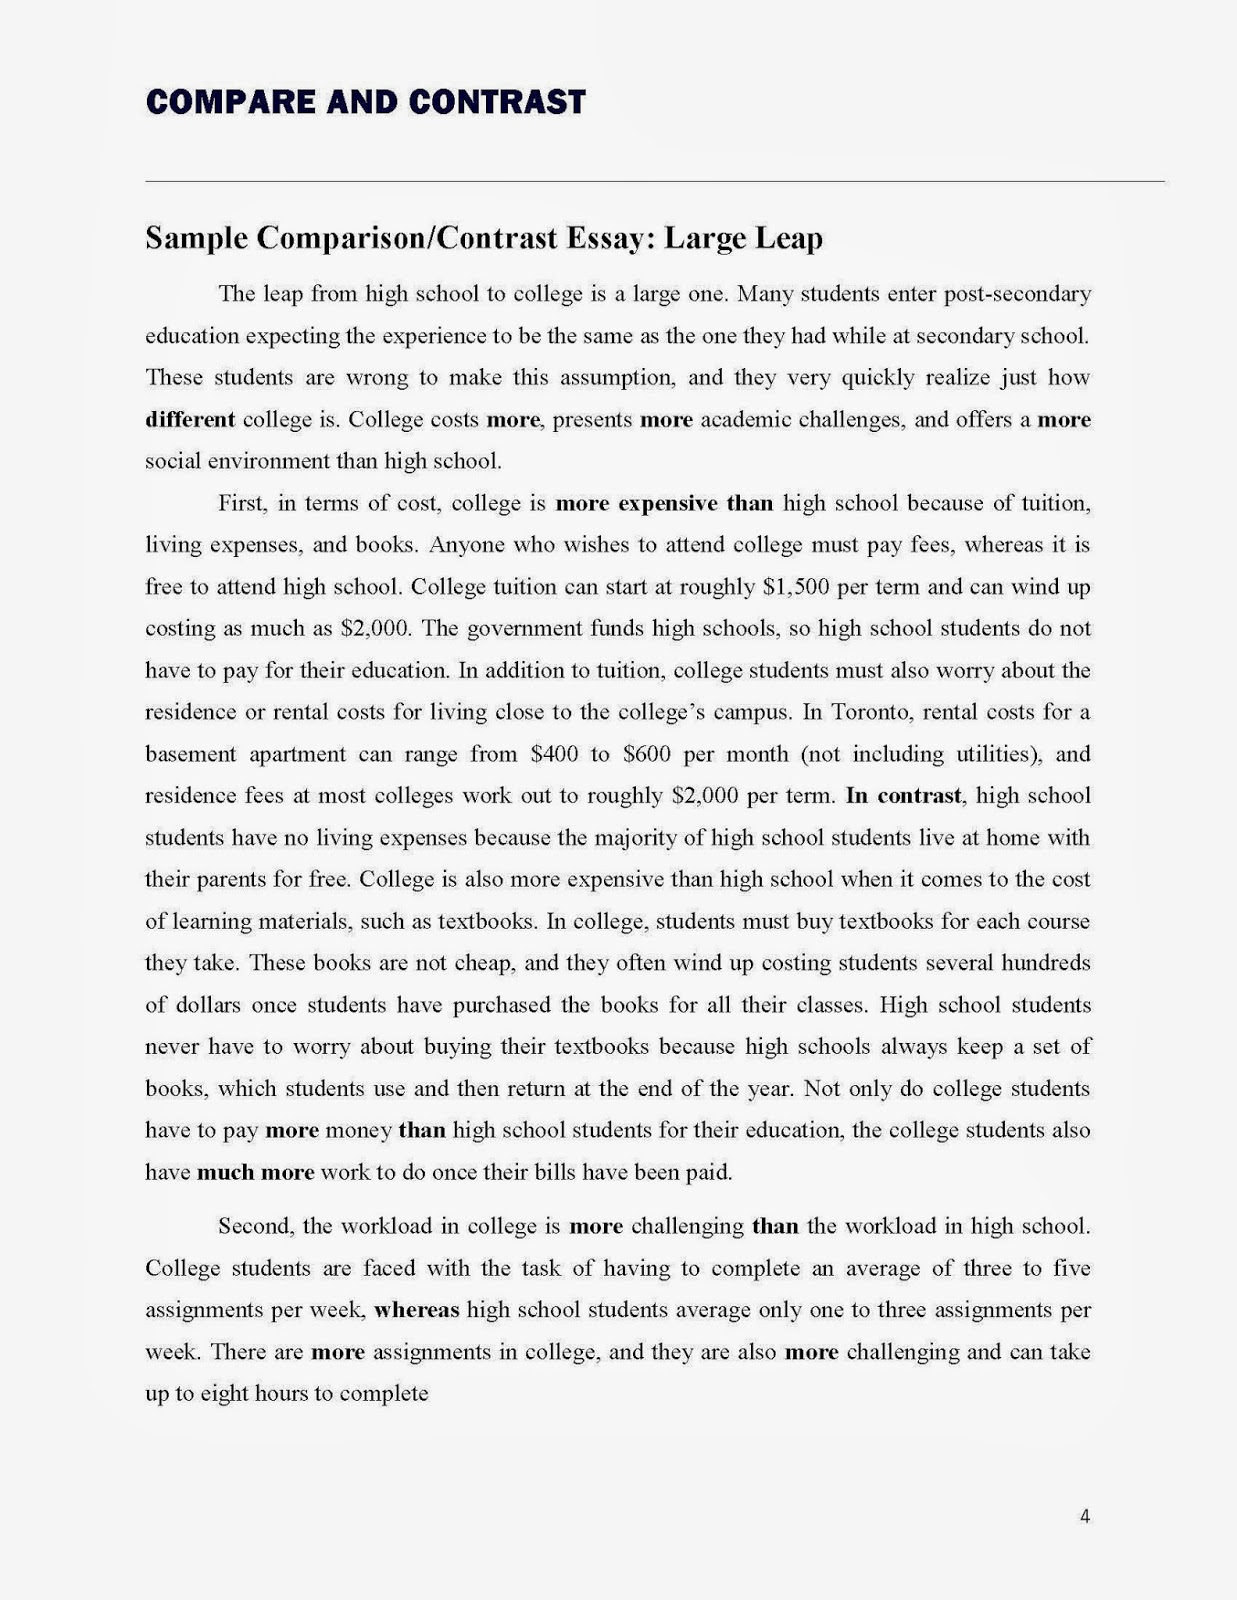 001 Compare20and20contrast20essay Page 4 Compare And Contrast Essay Topics For College Students Beautiful Full